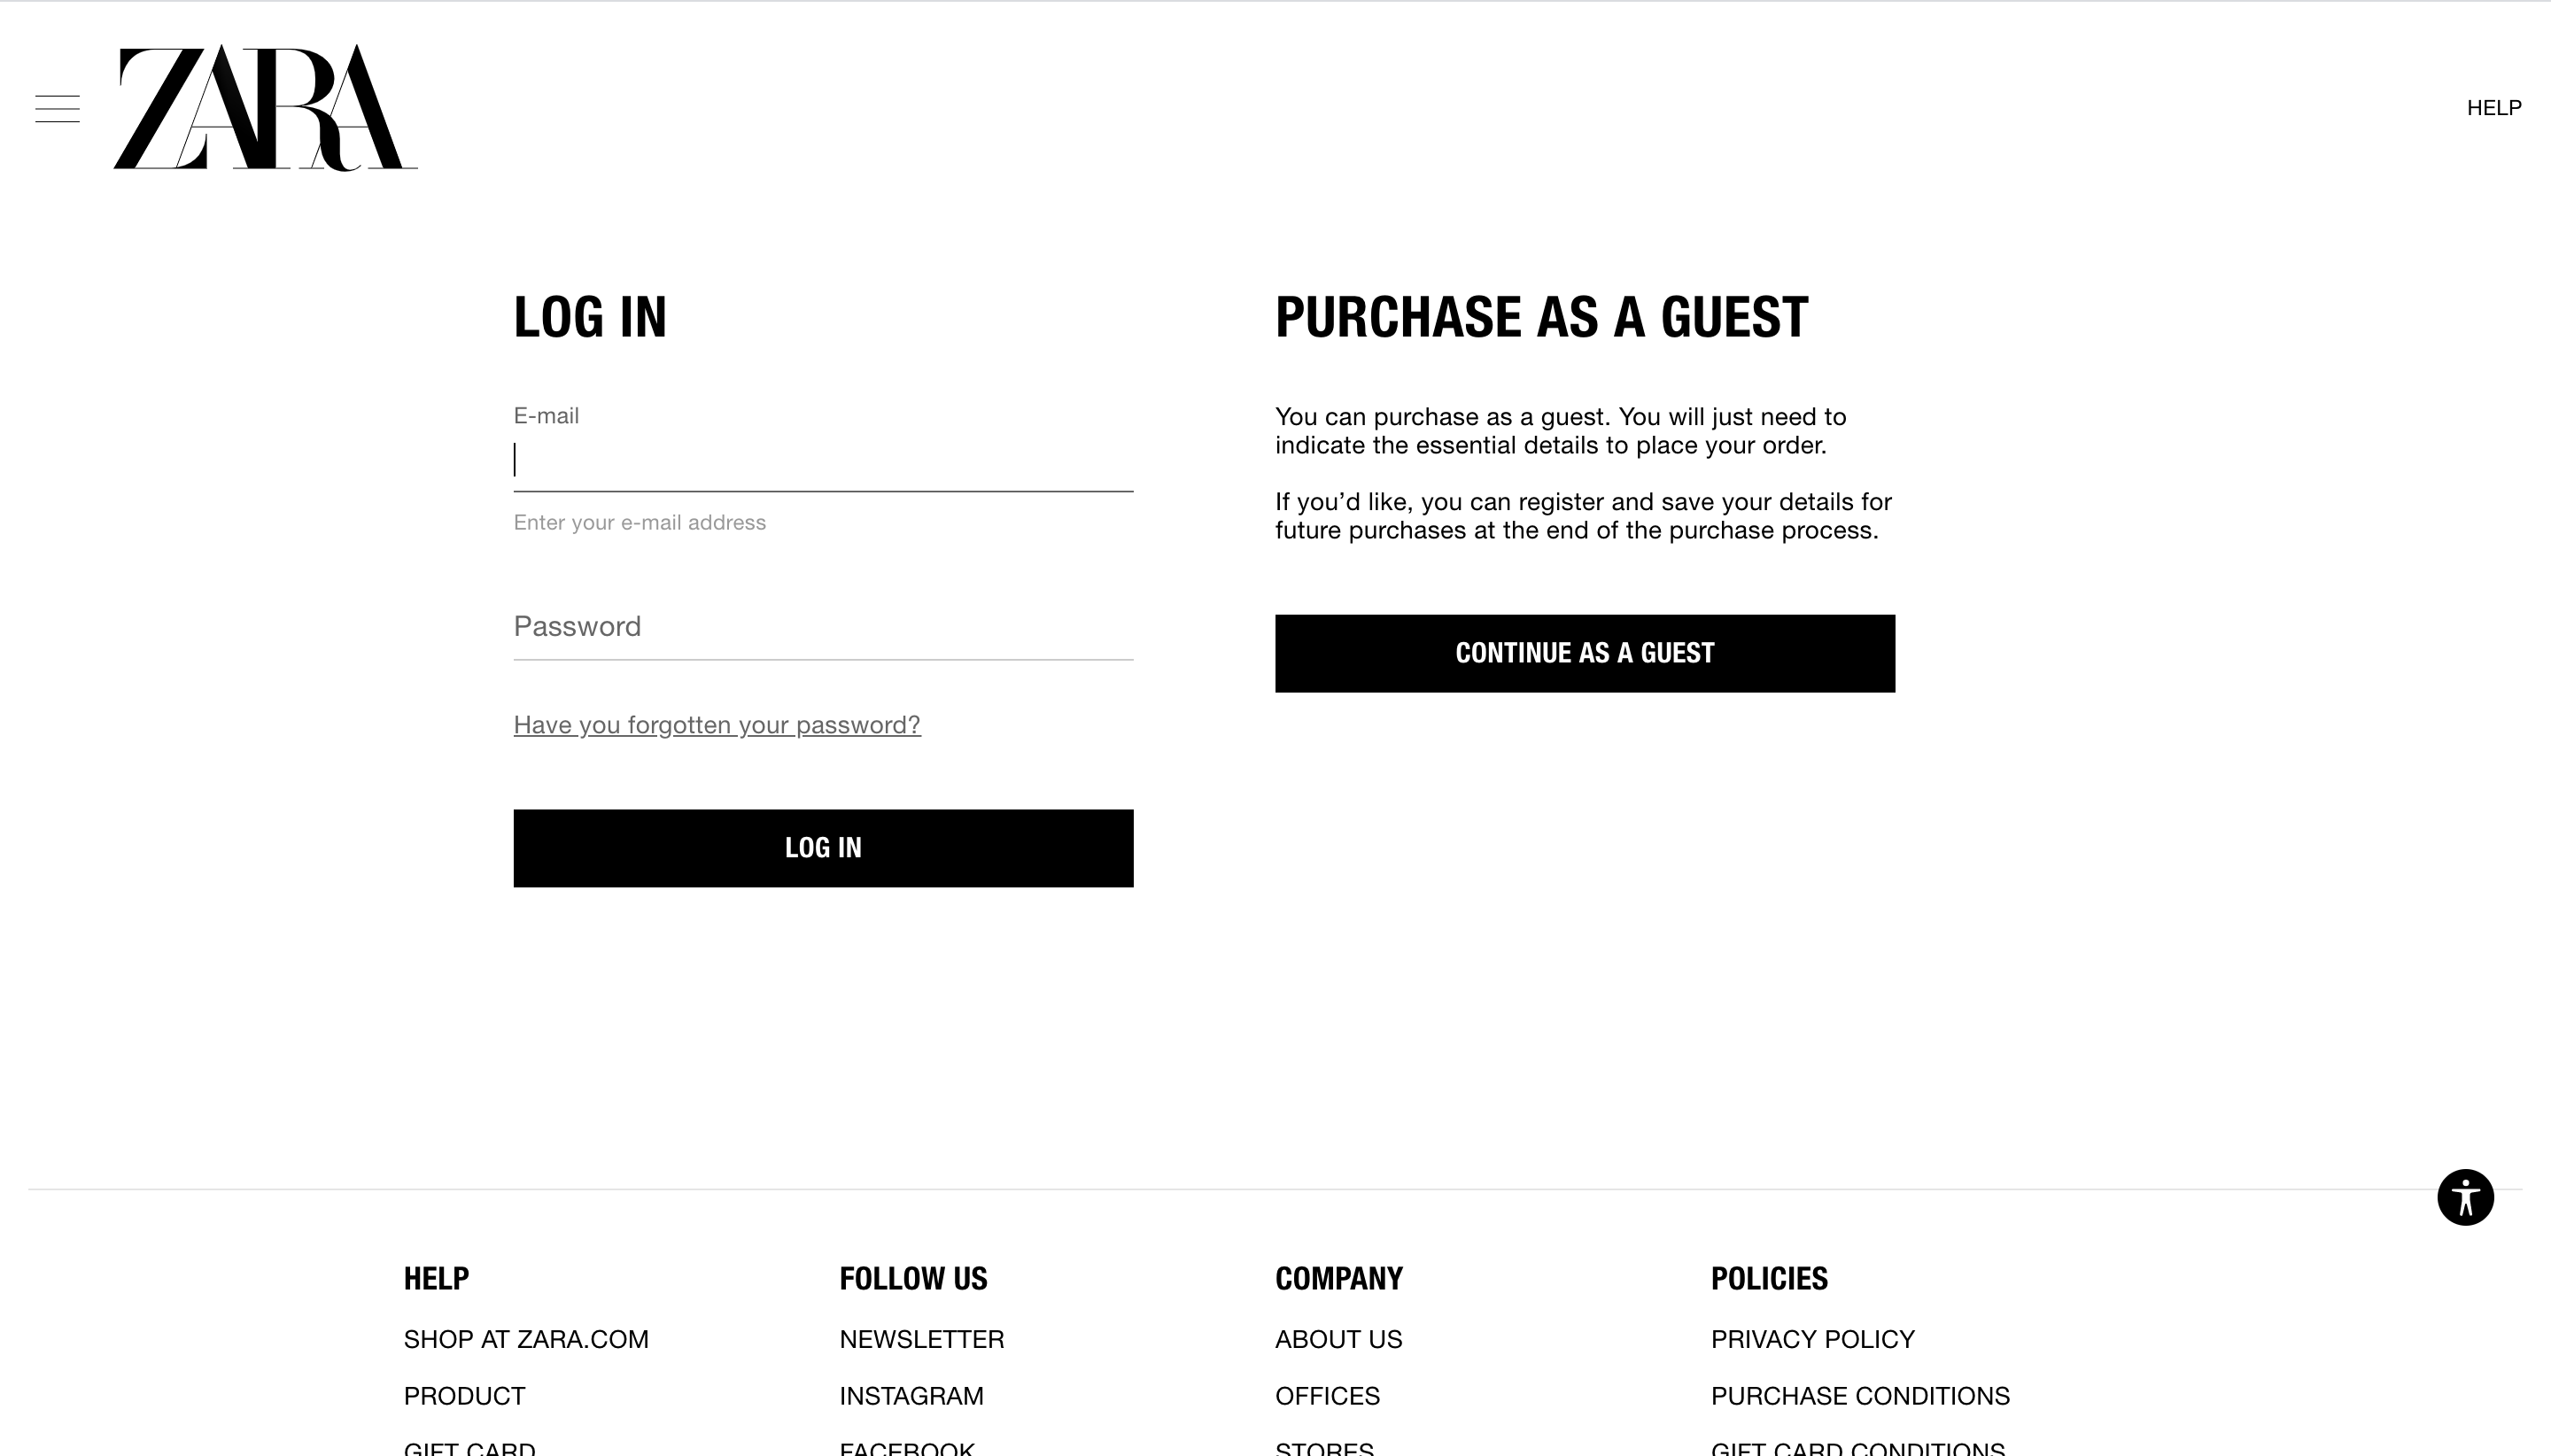 Zara's checkout form - Purchase as a guest or signup